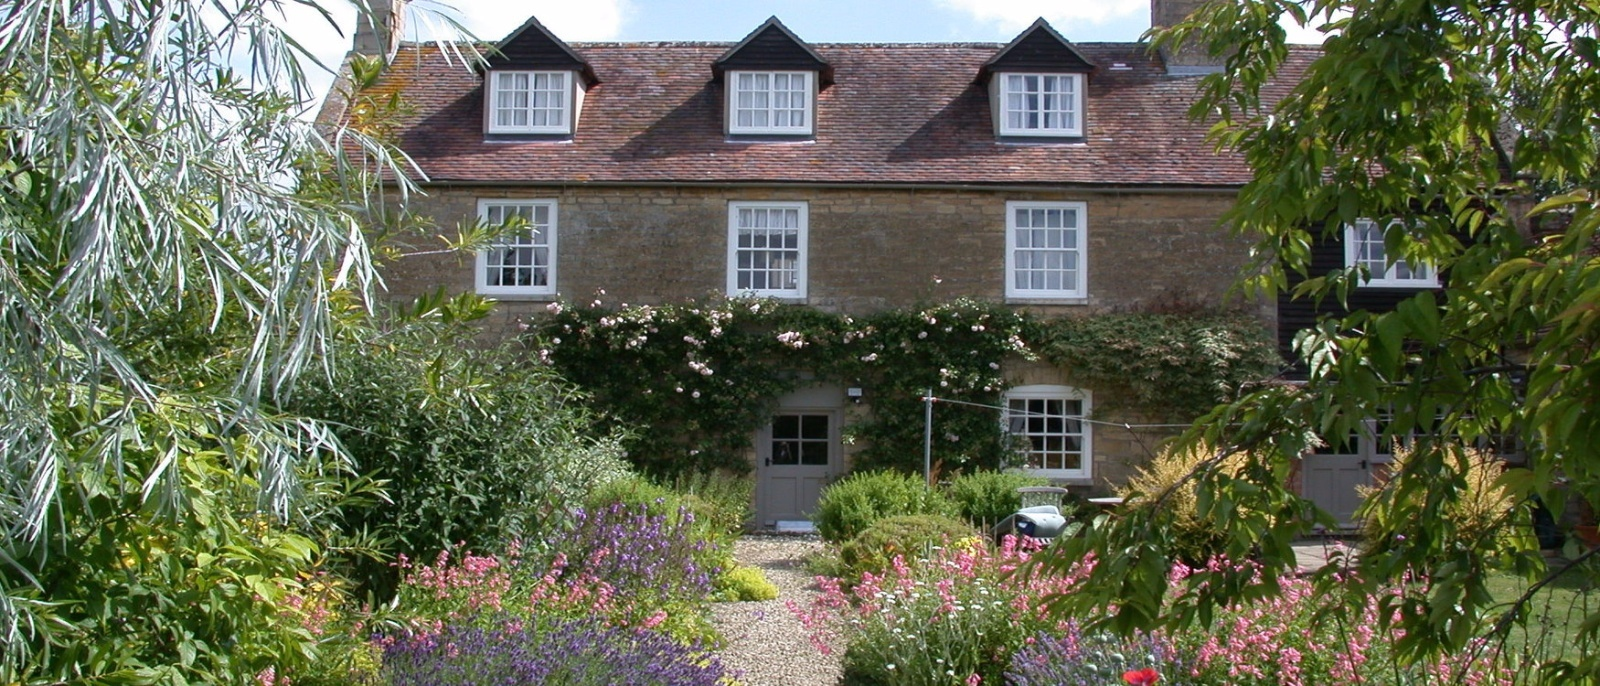 About Overbury -